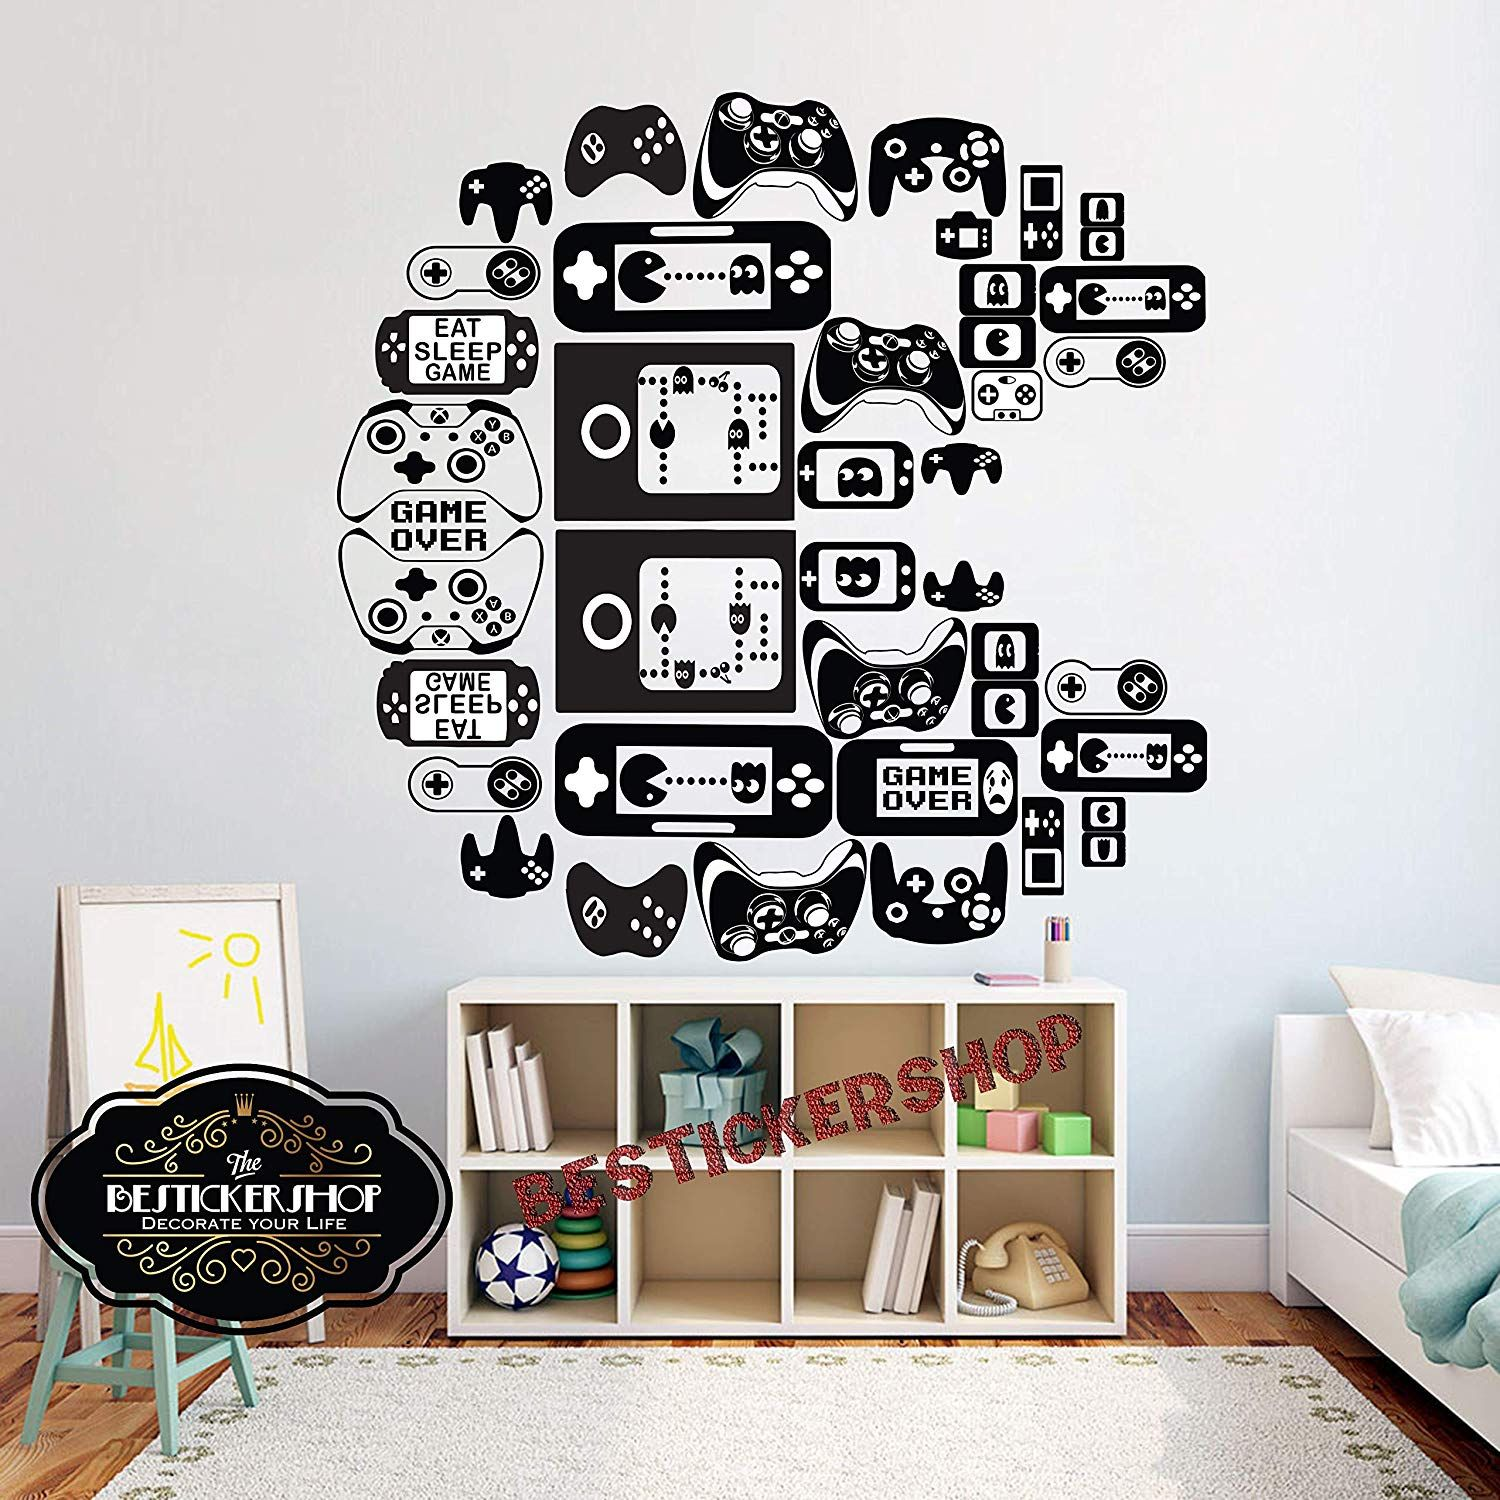 Pacman Icons Wall Decals Vinyl Wall Decals Decal Wall Art